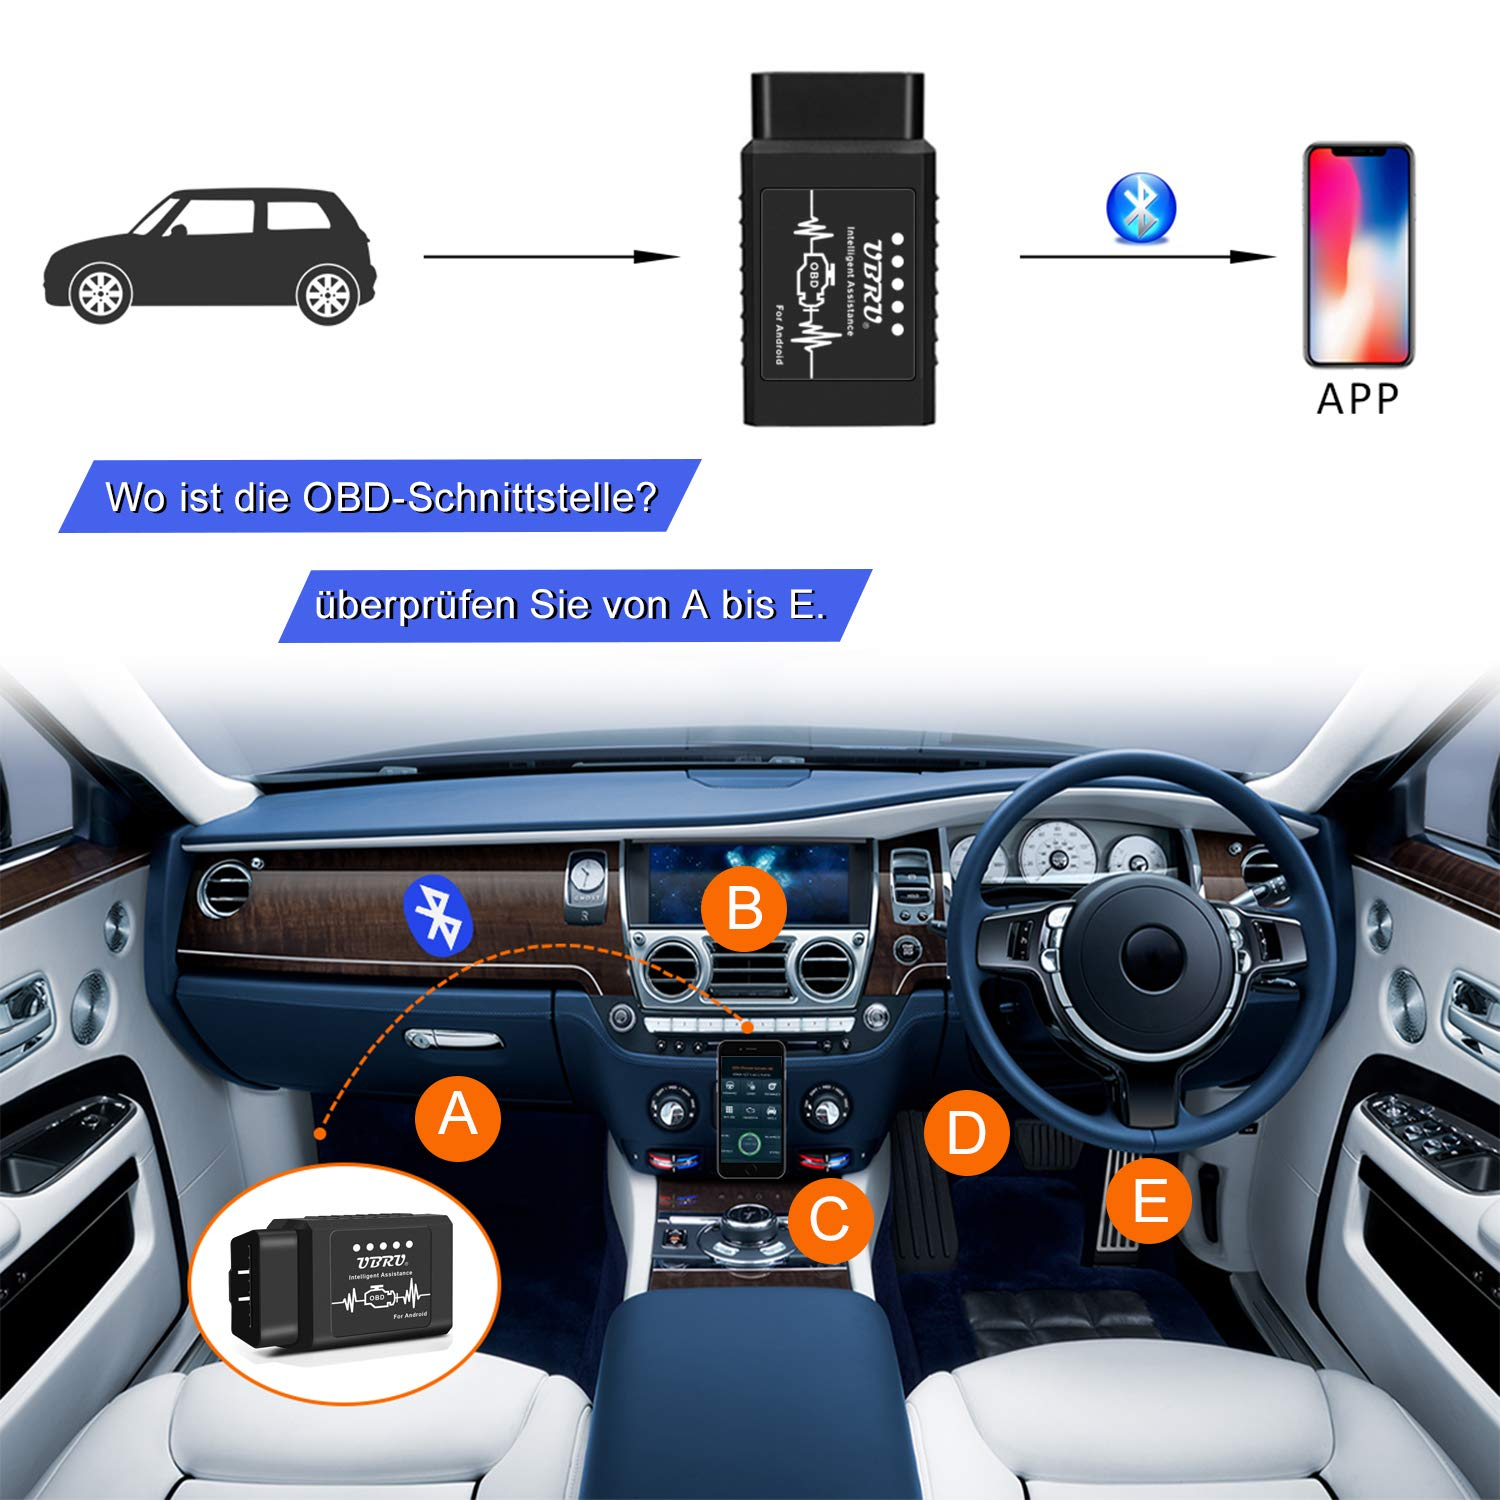 UBRU OBD2 Bluetooth Adapter OBDII Diagnose Scanner Engine Code Reader OBDII-Code Leser Motorkontrollleuchte Diagnoseger/ät f/ür Android Windows Ger/äten Kompatibel ist